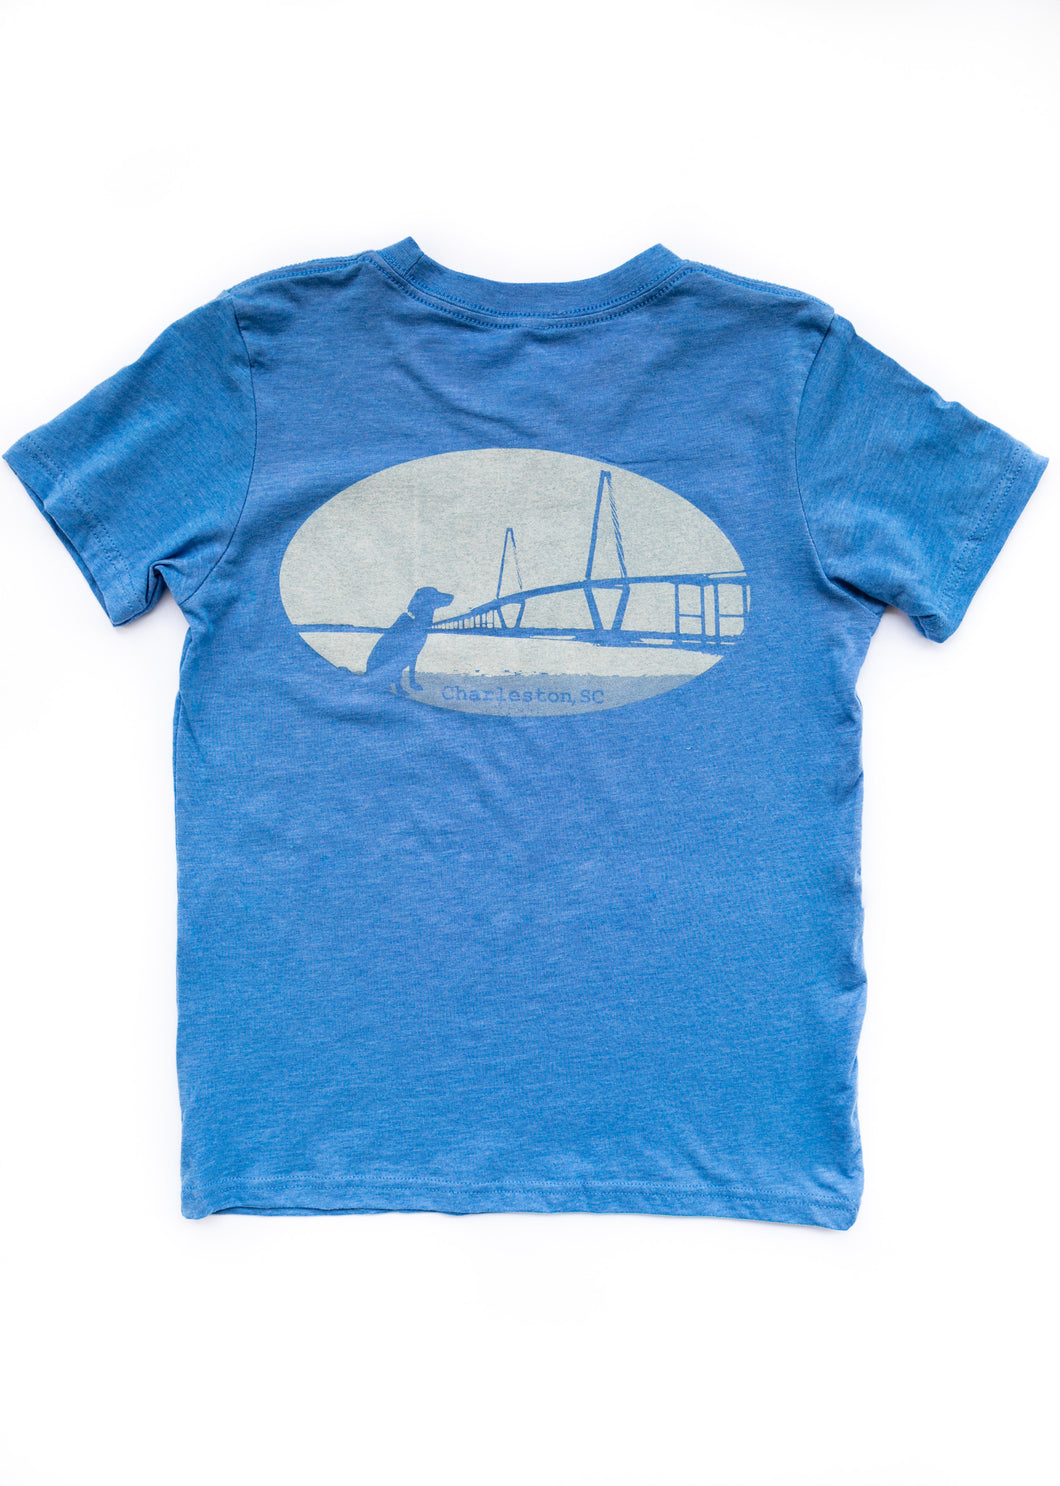 Charleston Ravenel Bridge Short Sleeve Youth T-shirt